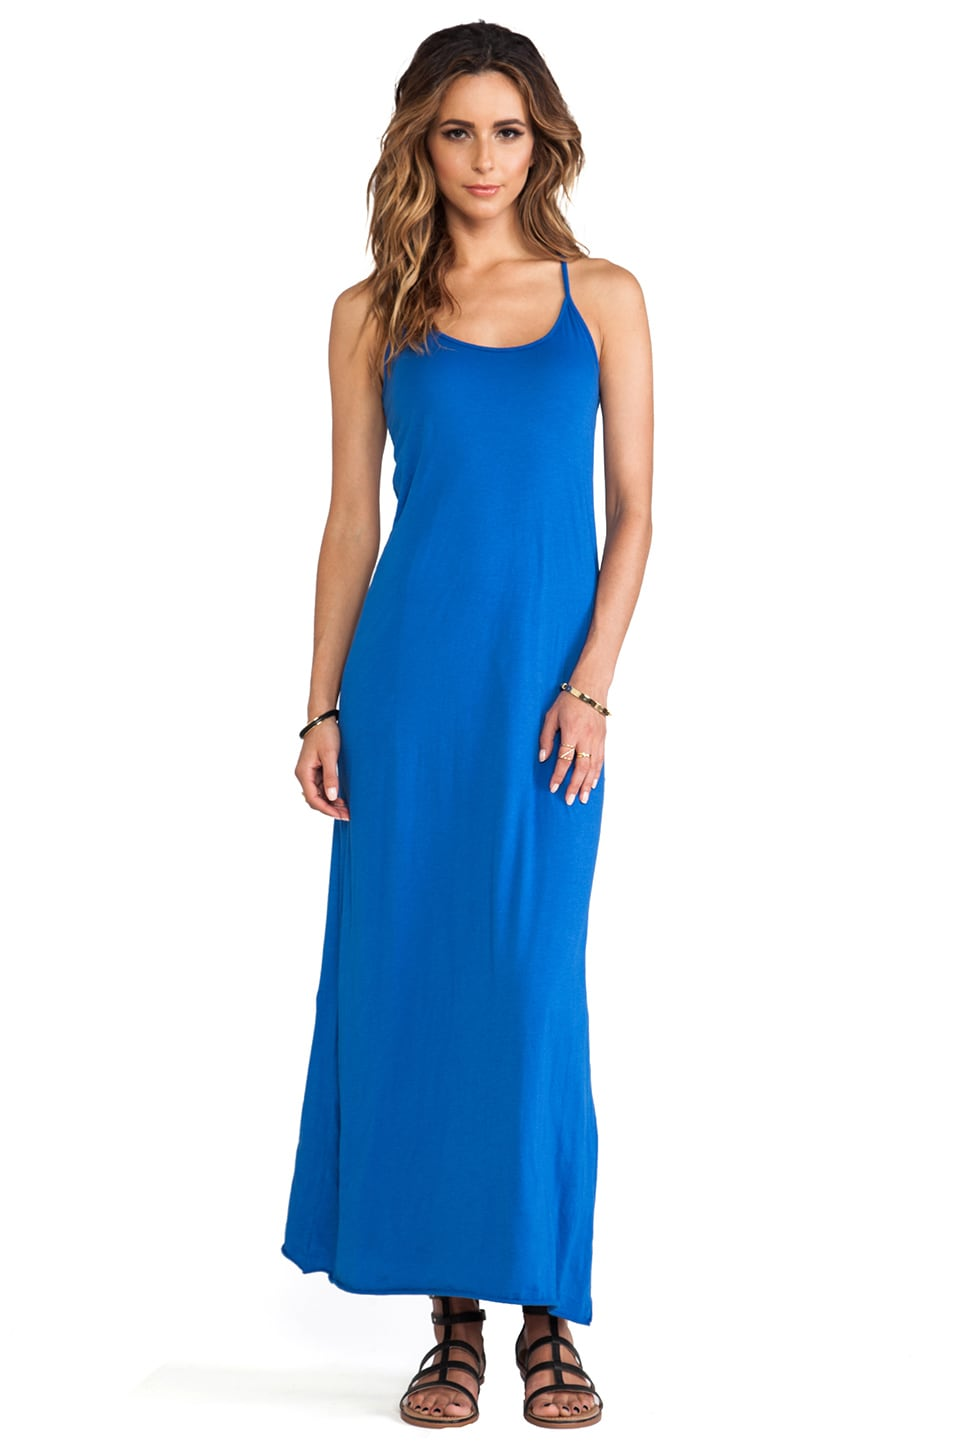 Velvet by Graham & Spencer Nima Gauzy Whisper Dress in Seaport